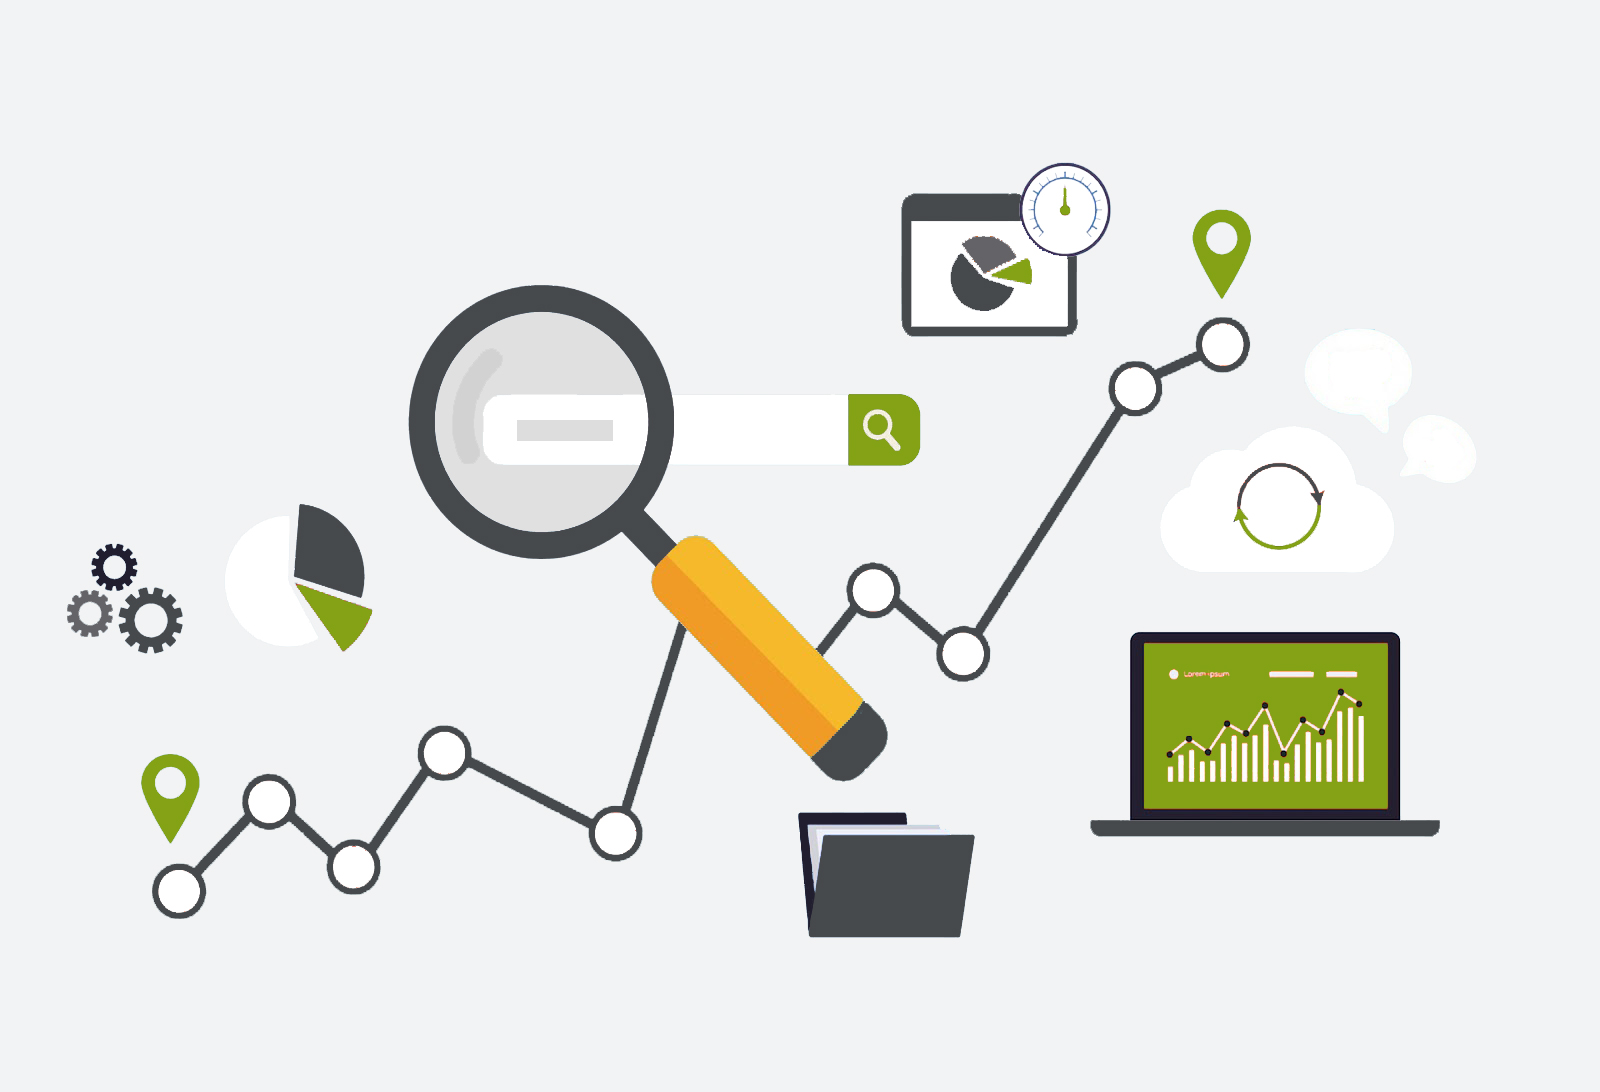 agence de référencement web SEARCH ENGINE OPTIMISATION (SEO)